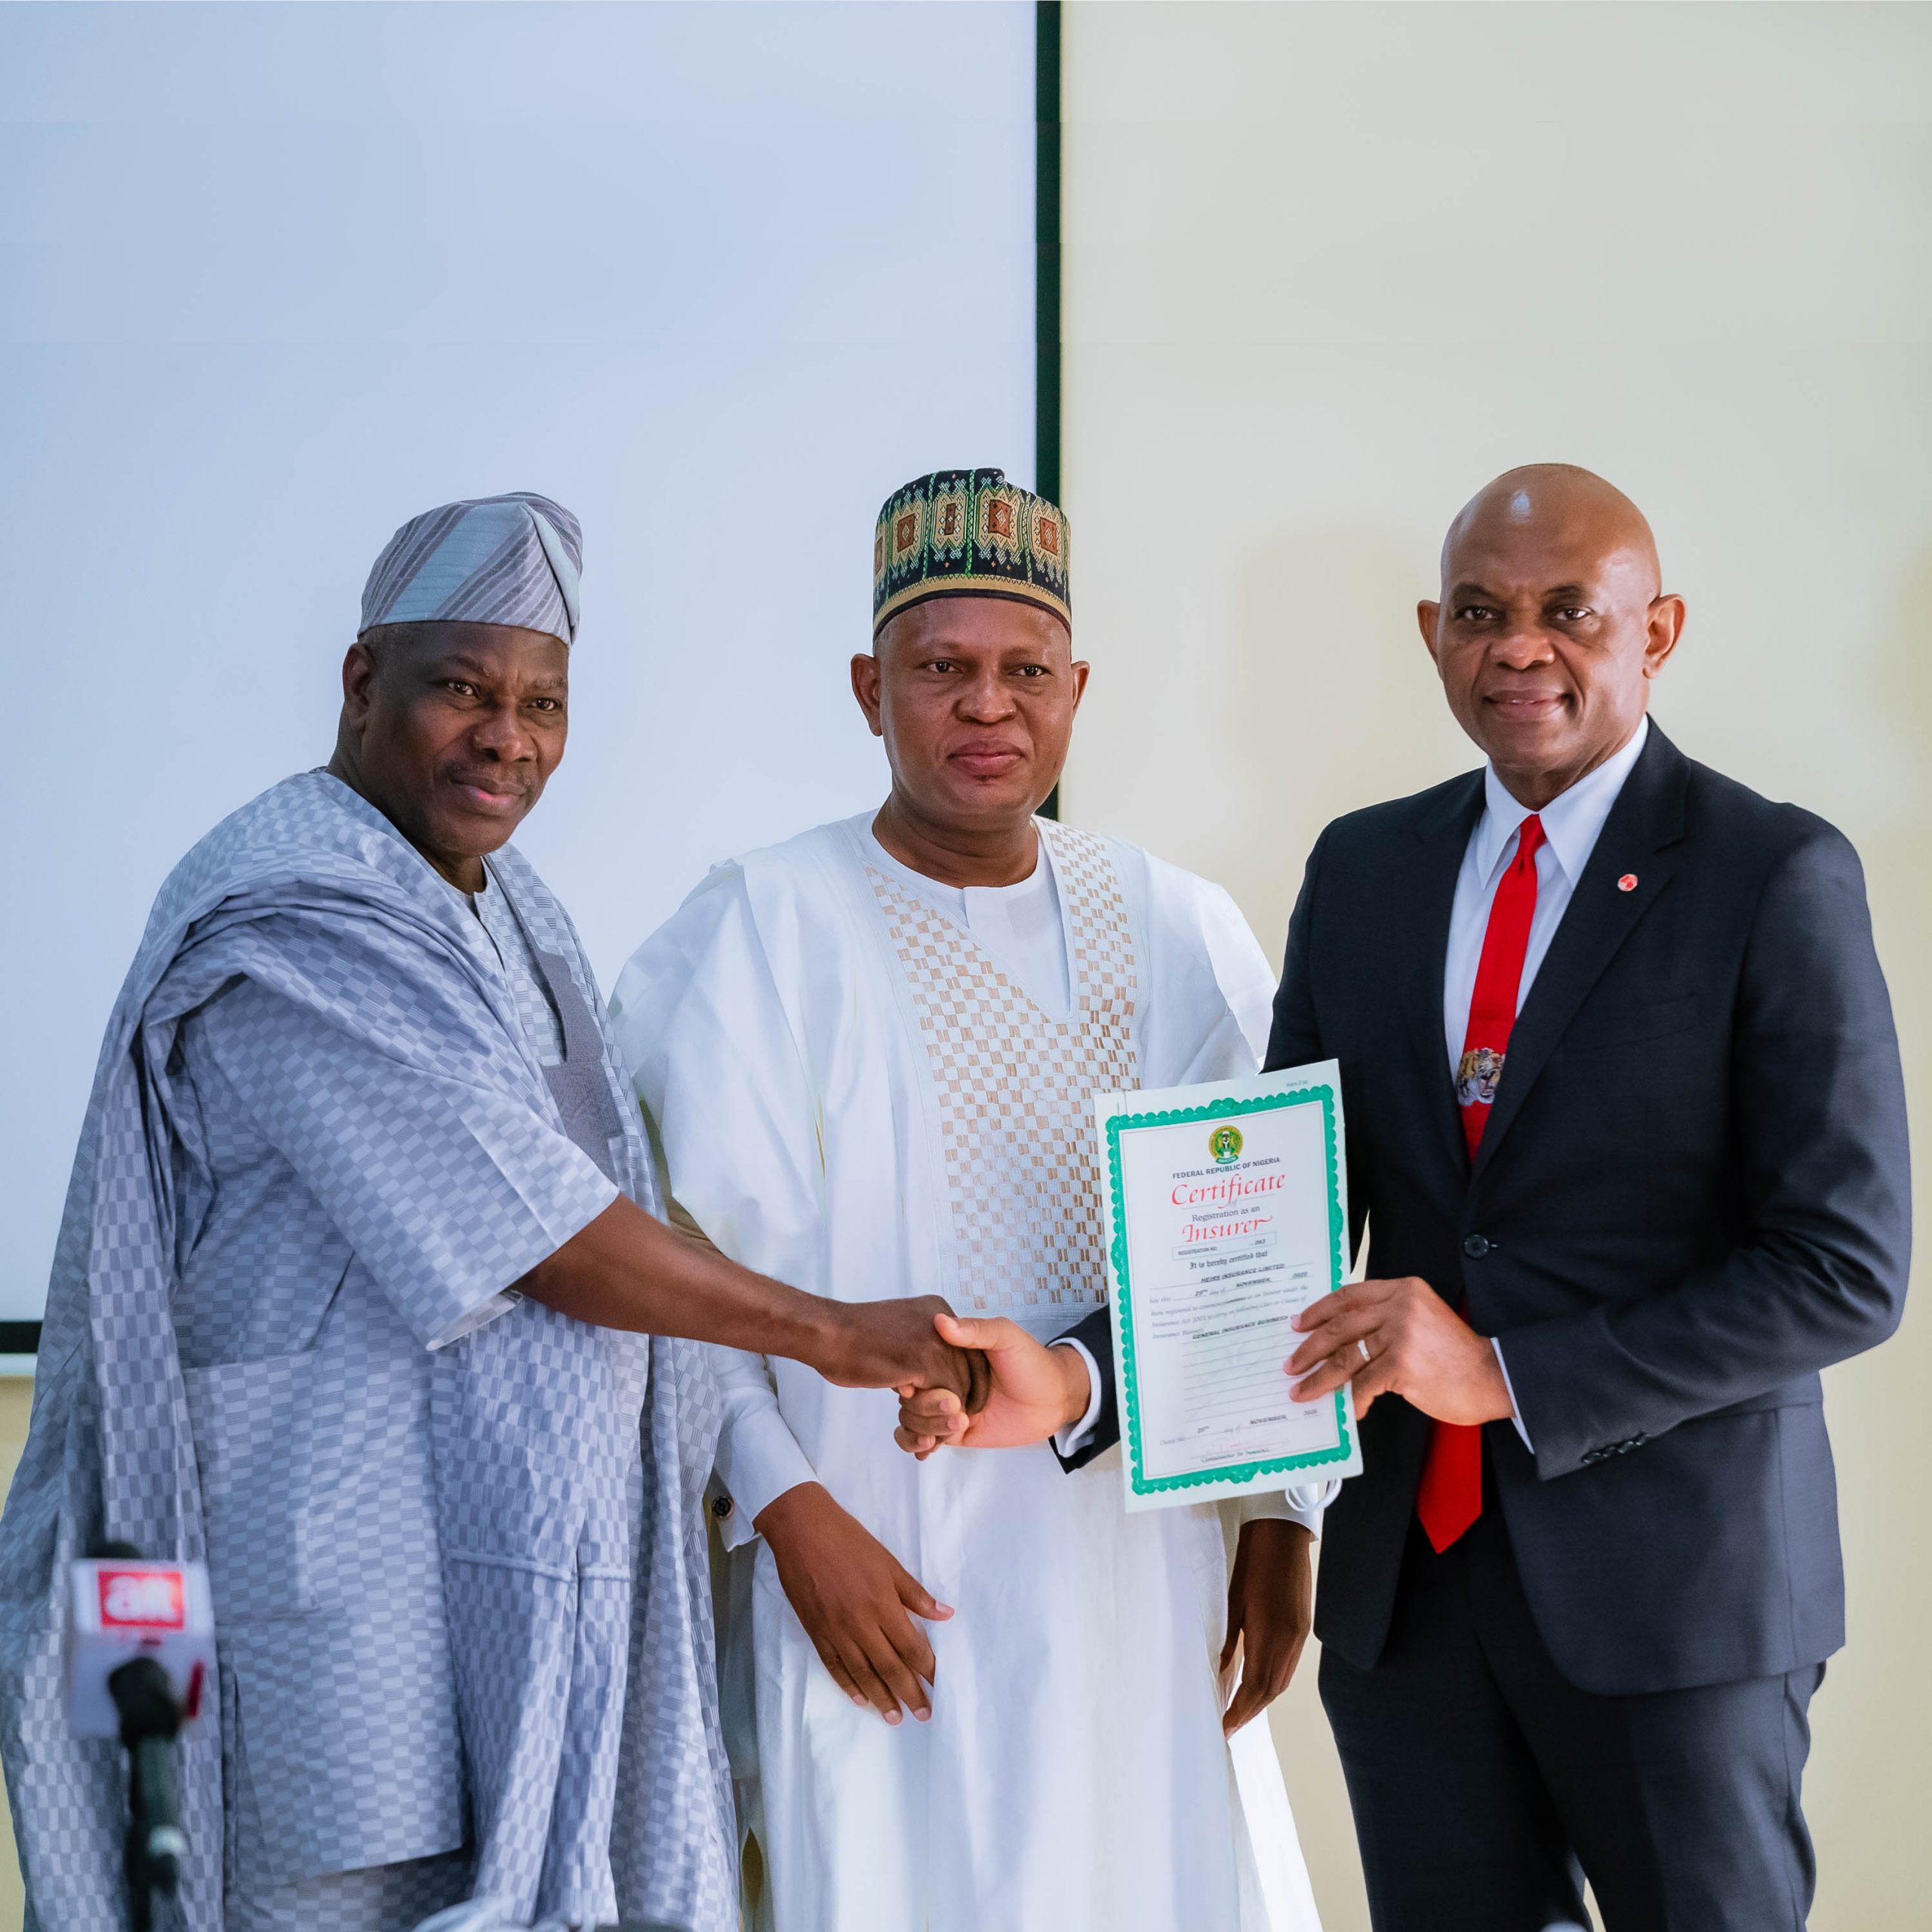 NAICOM: Chairman of Heirs Holdings receives operating licence for Heirs Insurance and Heirs Life